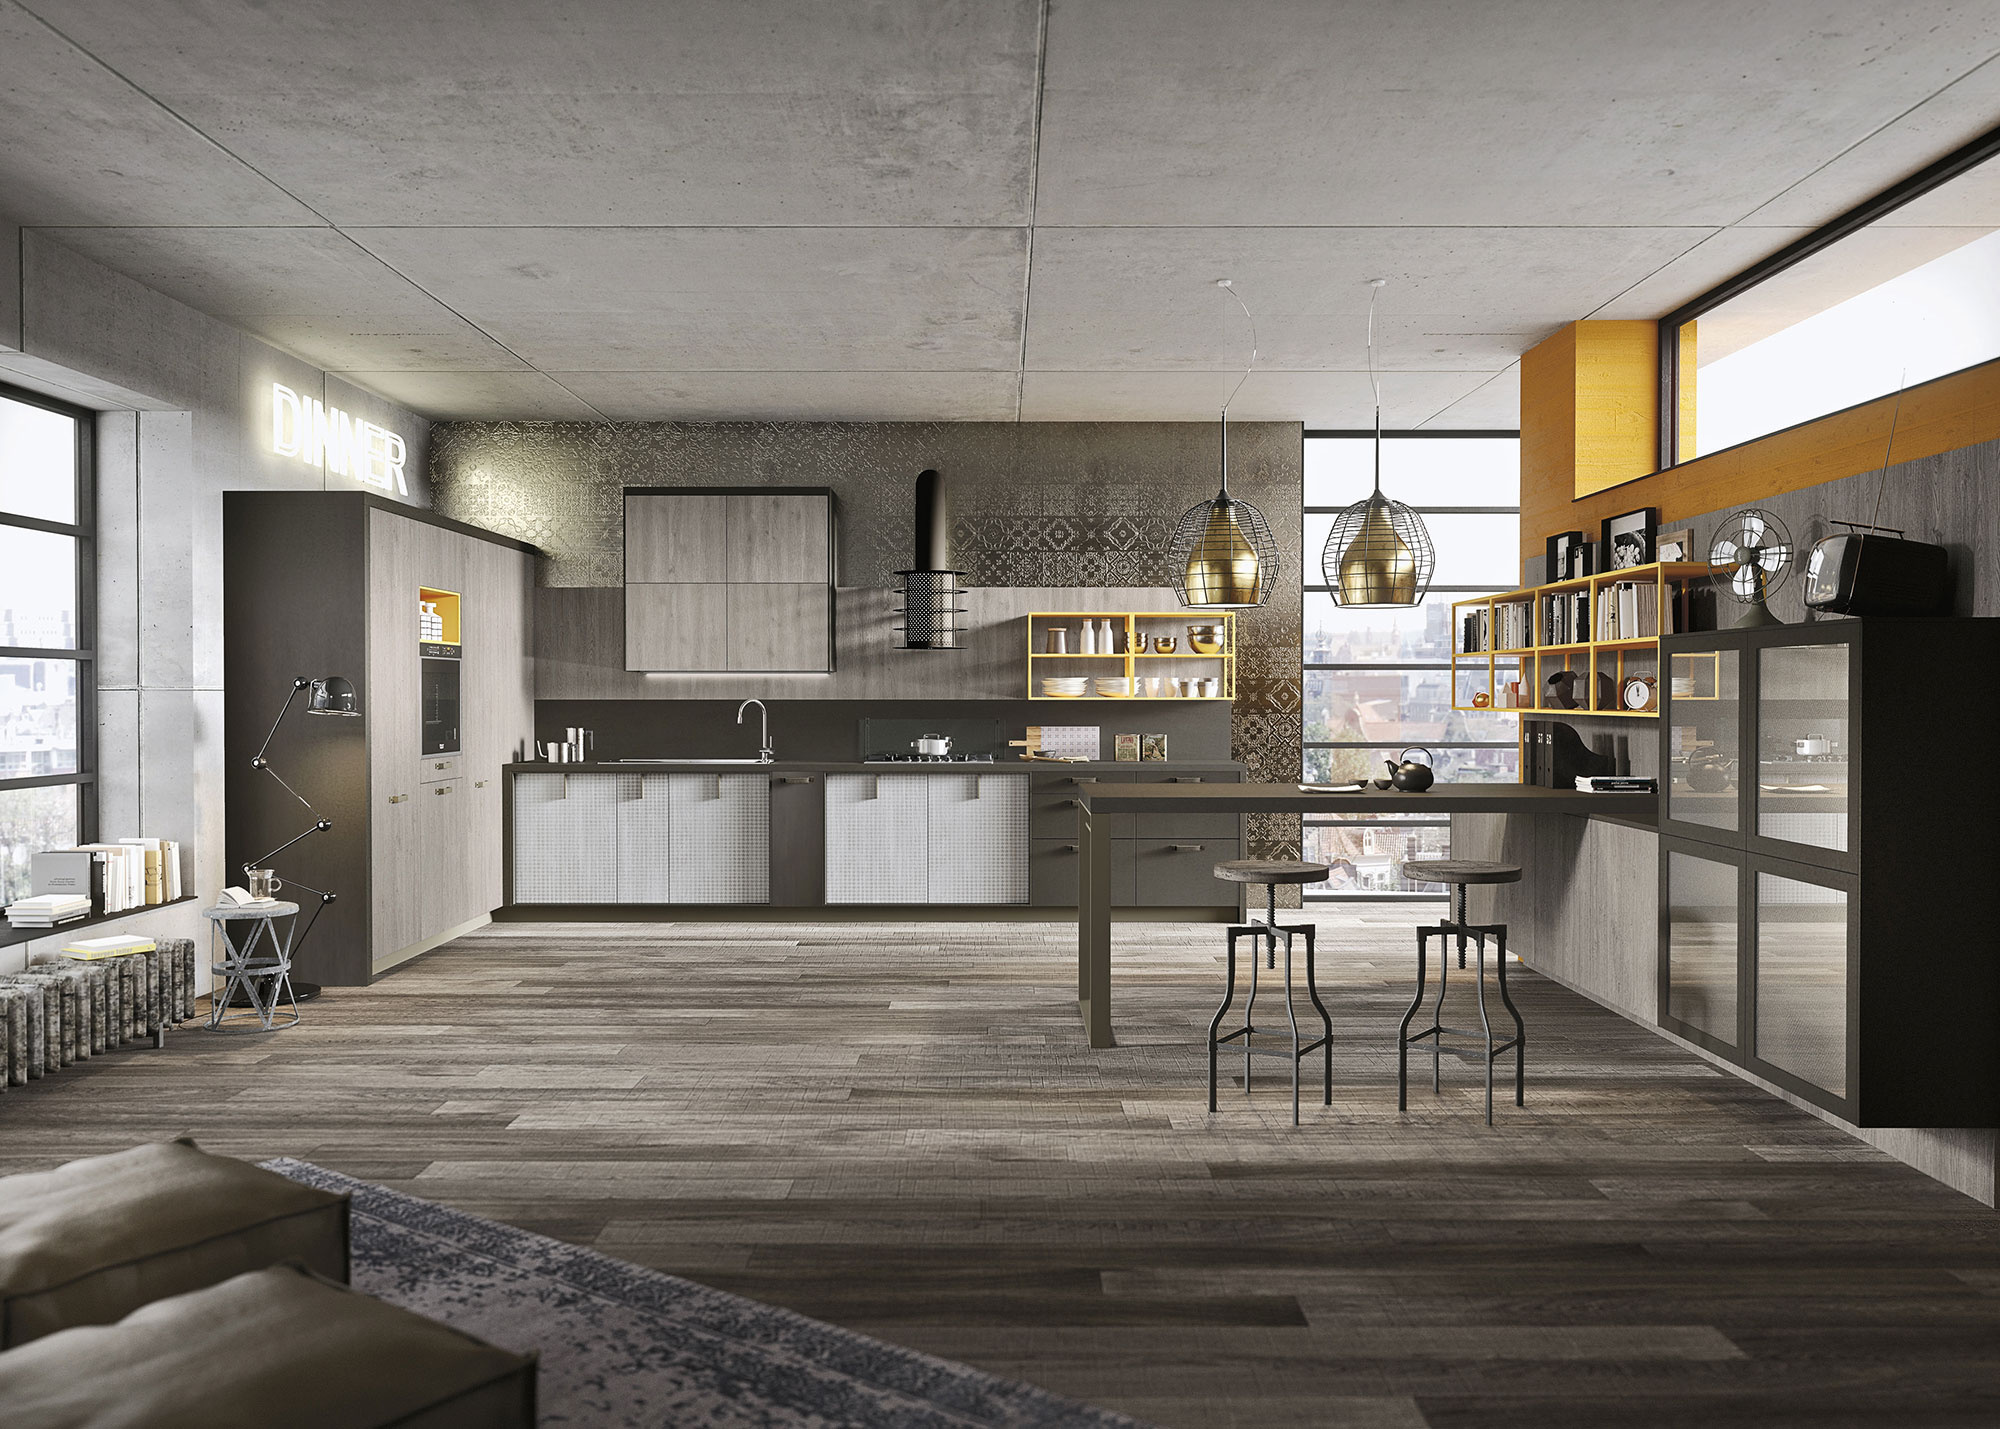 18-kitchen-design-lofts-3-urban-ideas-snaidero